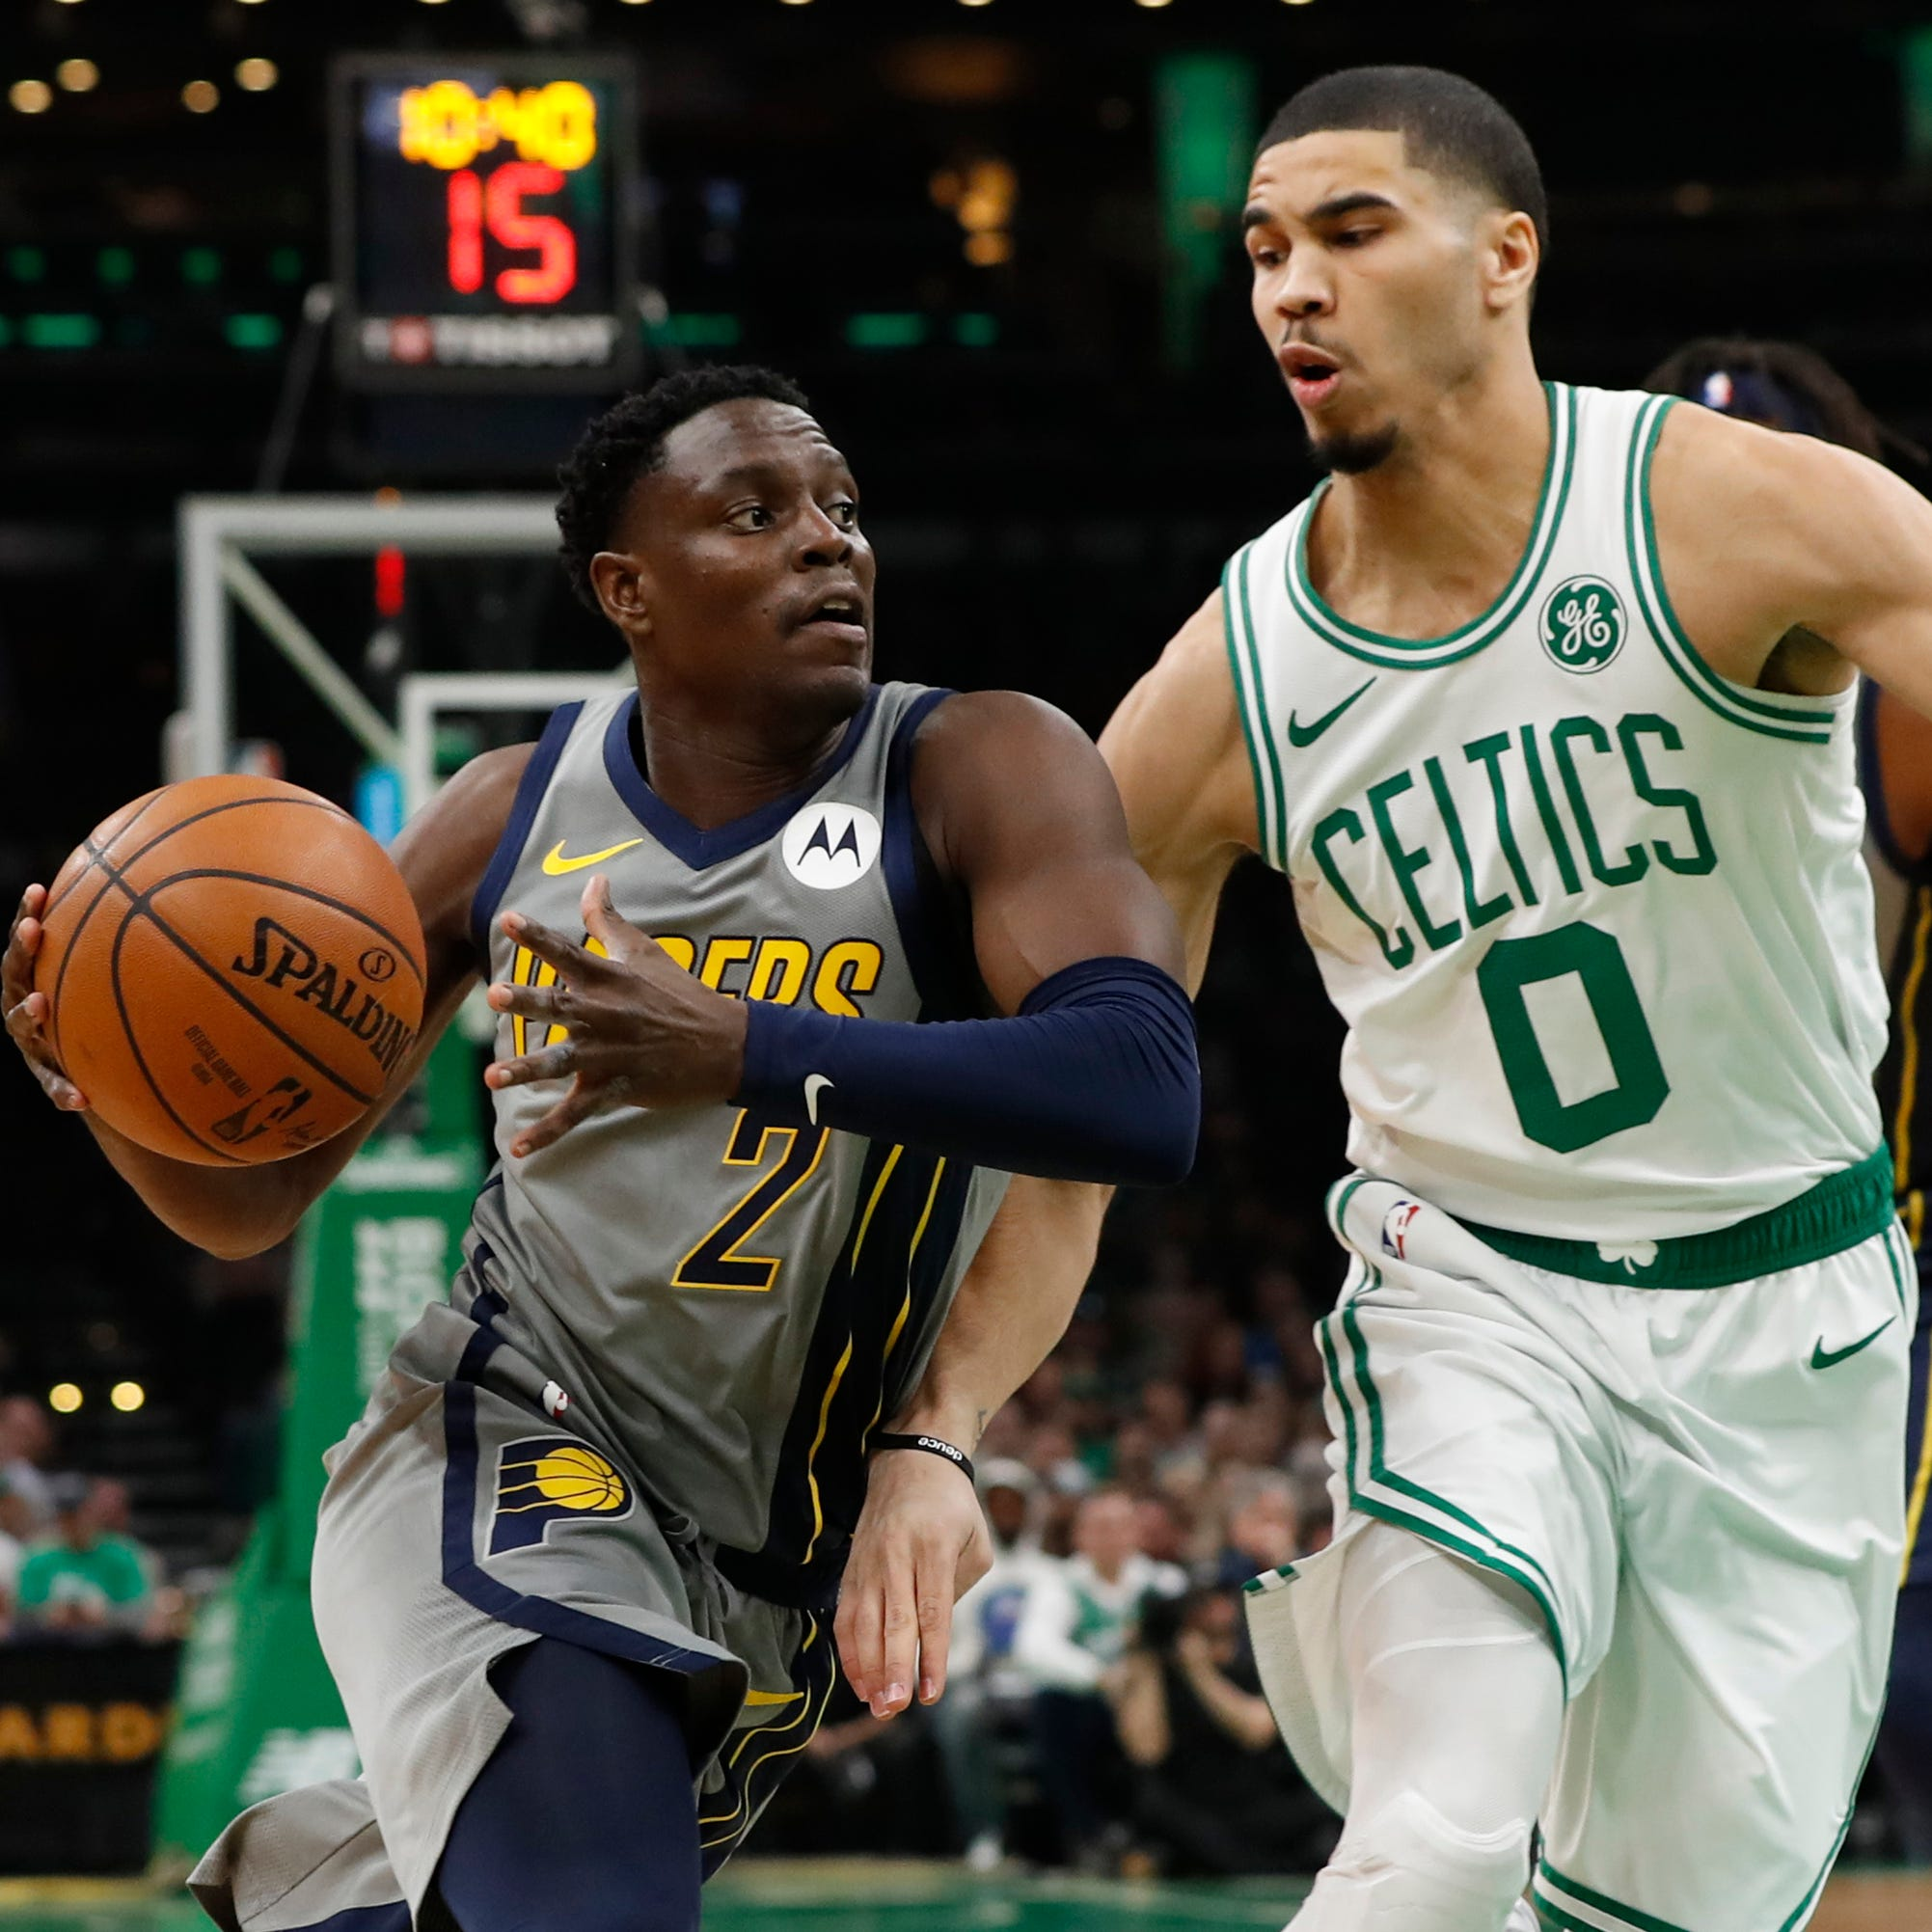 Pacers vs. Celtics comes with plenty of playoff implications